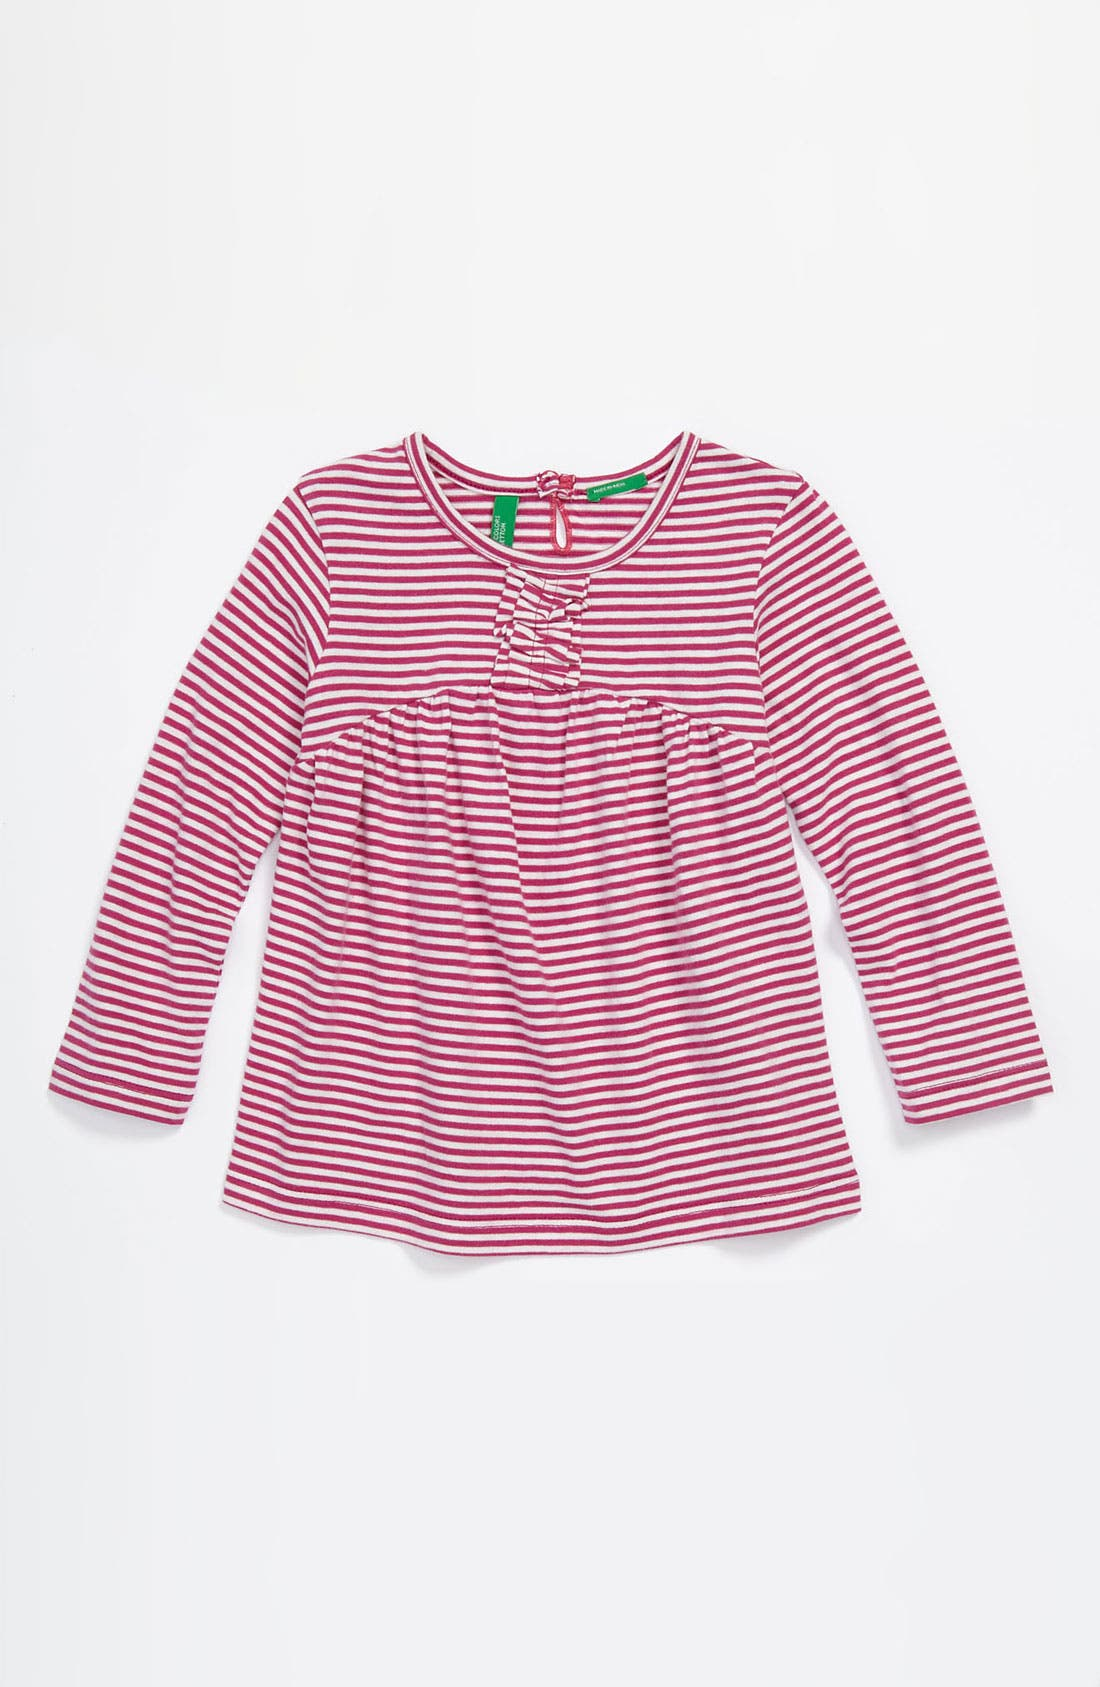 Alternate Image 1 Selected - United Colors of Benetton Kids Stripe Ruffle Tee (Infant)